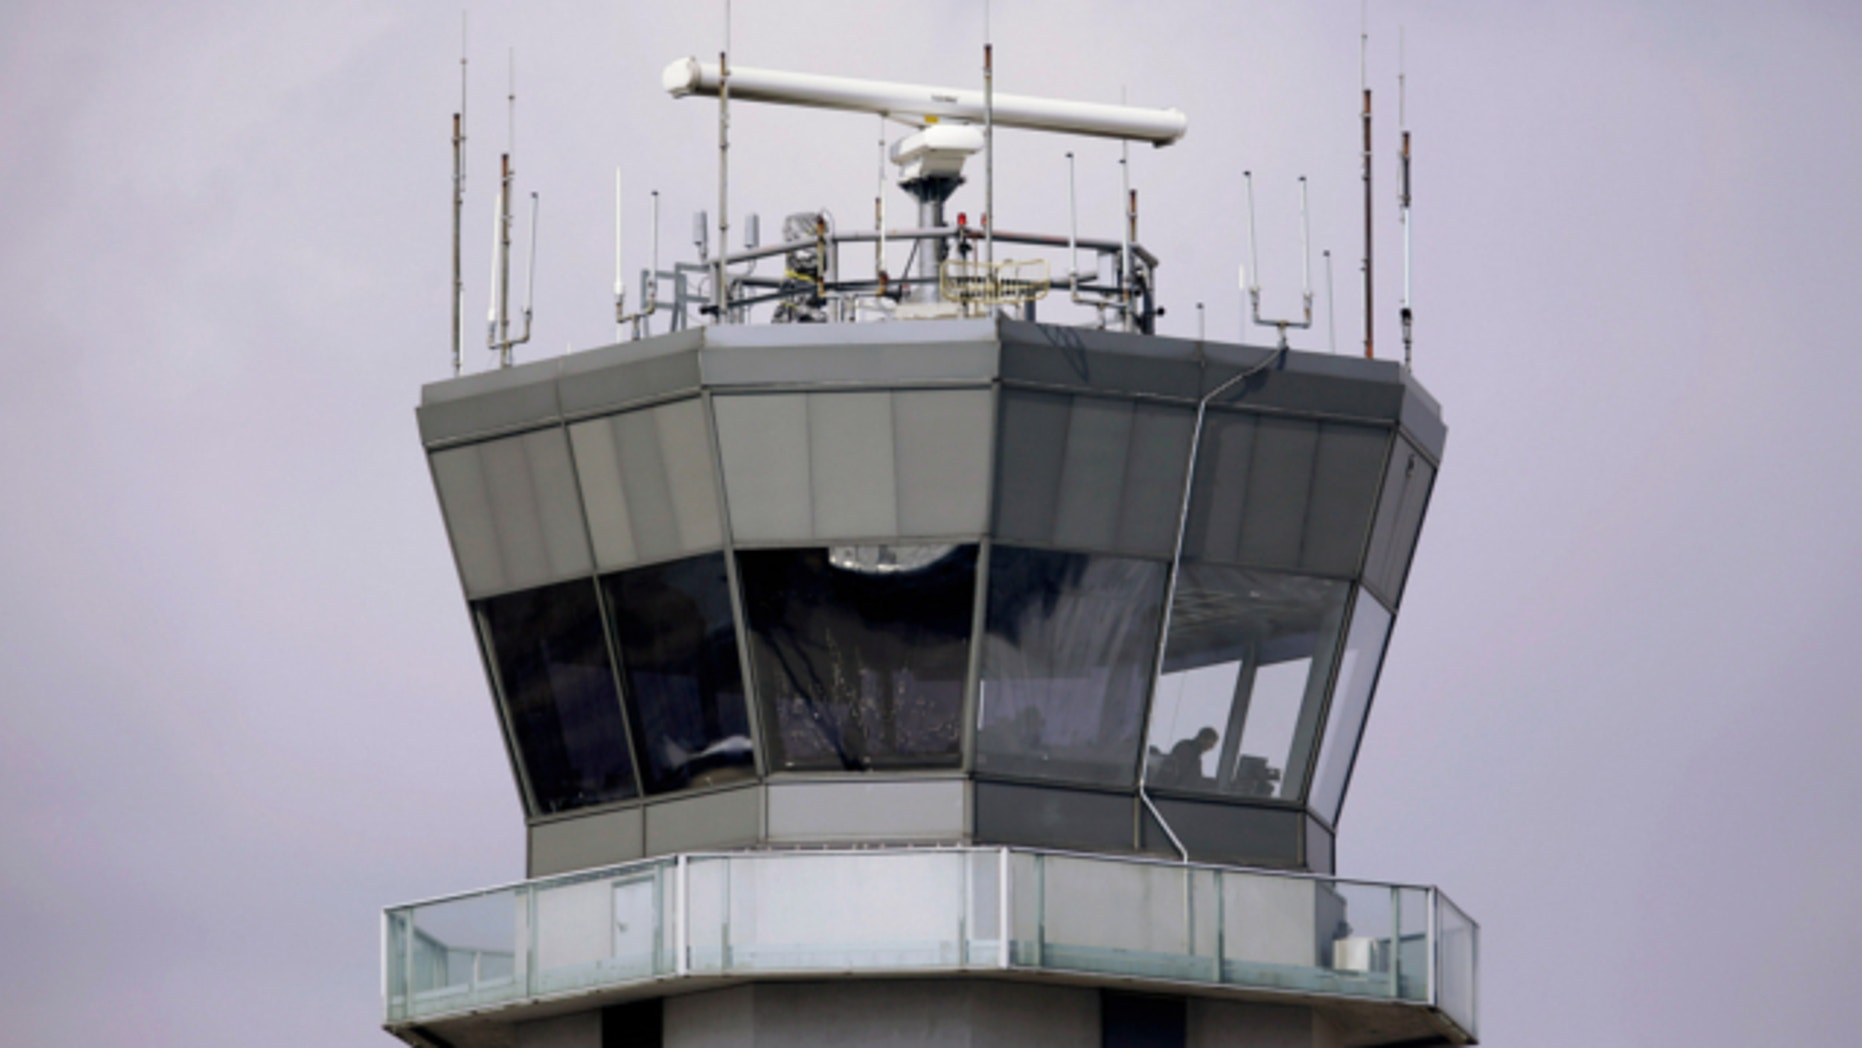 March 12, 2013: This photo shows the air traffic control tower at Chicago's Midway International Airport.